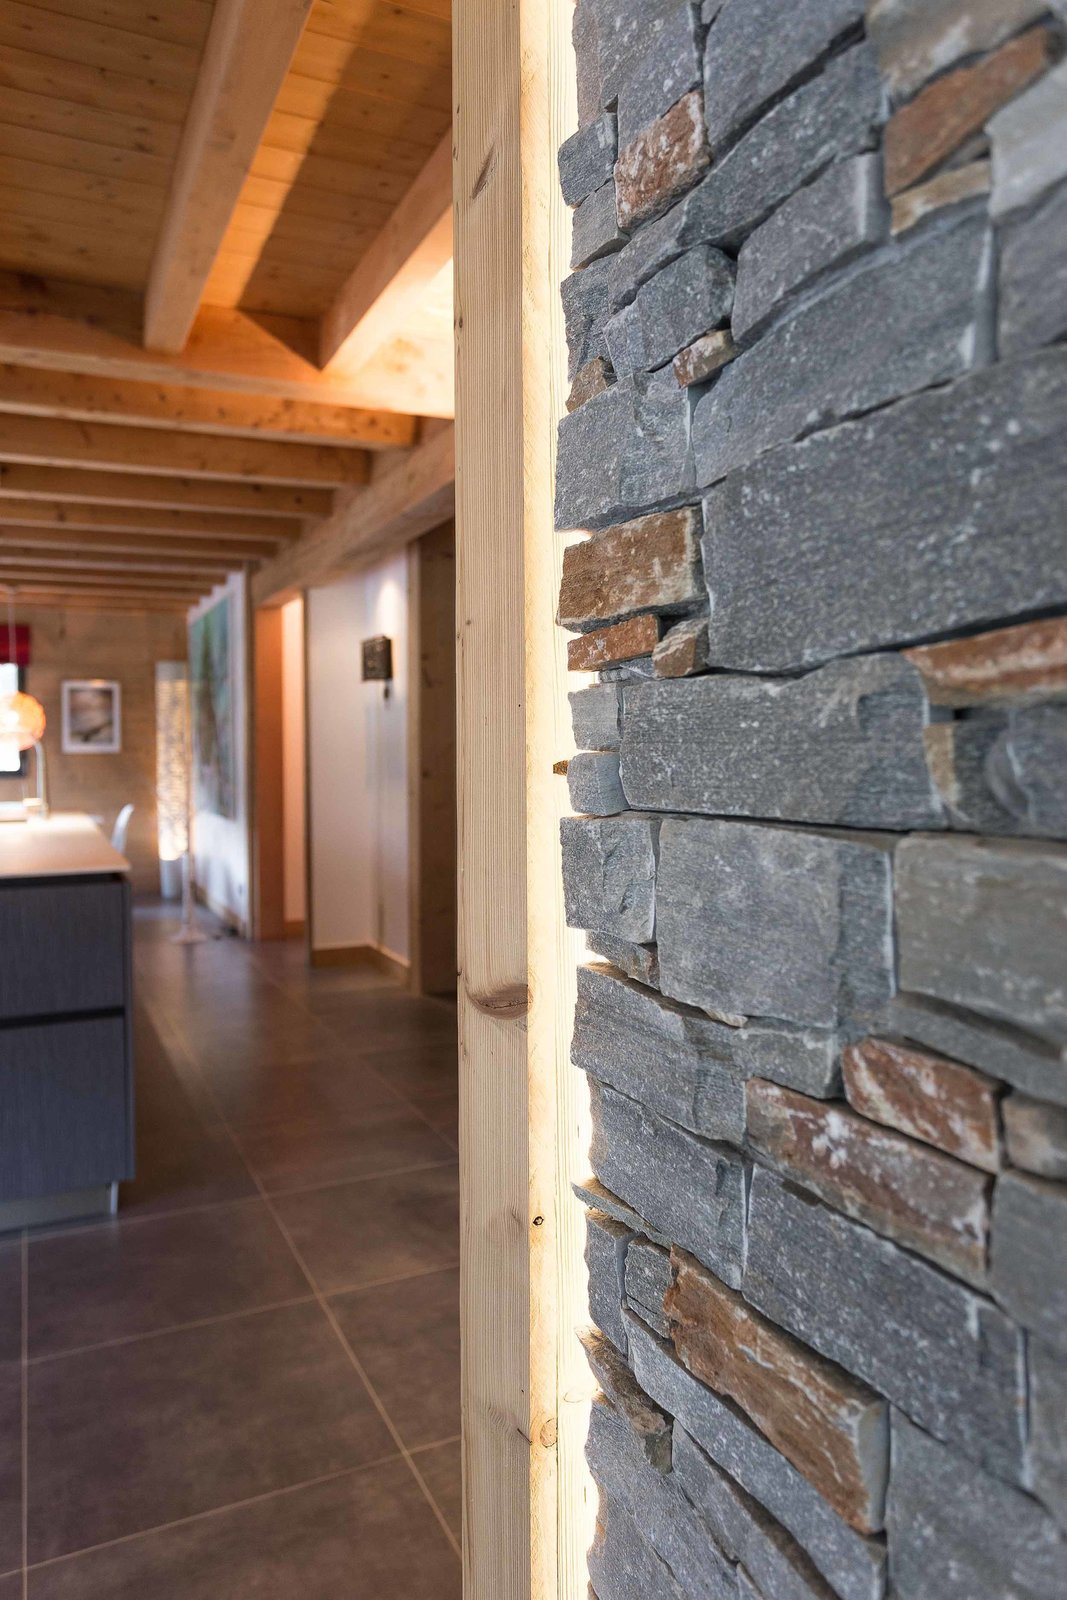 Wood and stone elements add to the rustic atmosphere inside, resulting in a home that feels like a natural extension of the landscape.